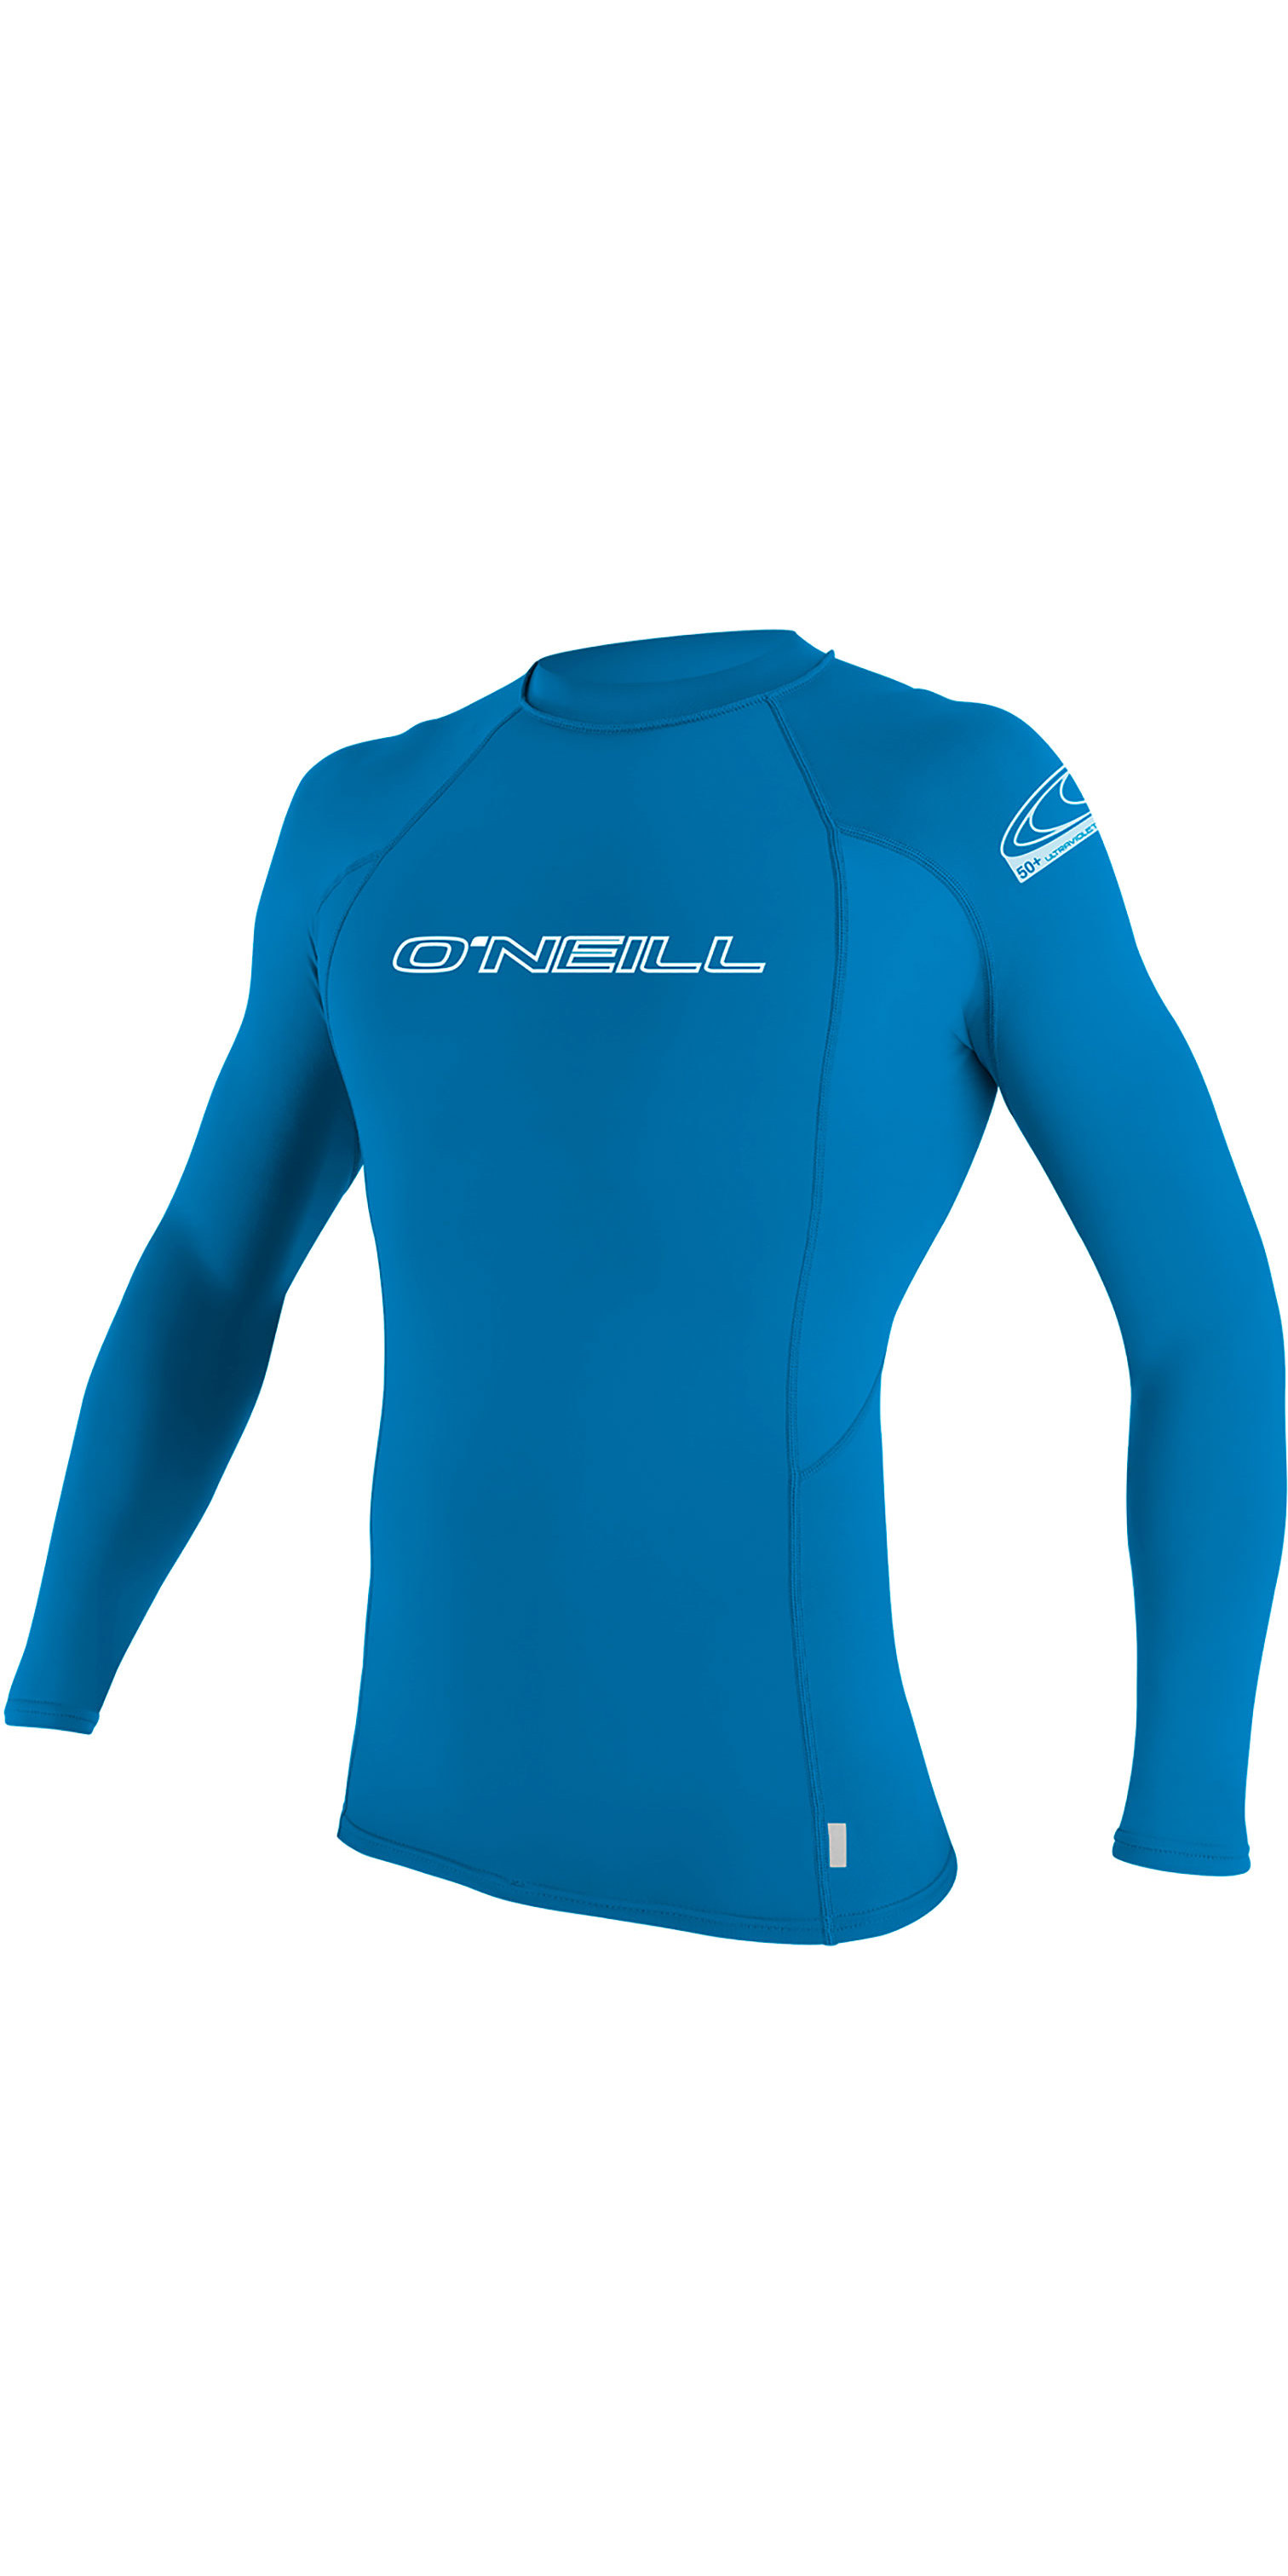 79ae2b10ea 2019 O'Neill Youth Basic Skins Long Sleeve Rash Vest Brite Blue 3346